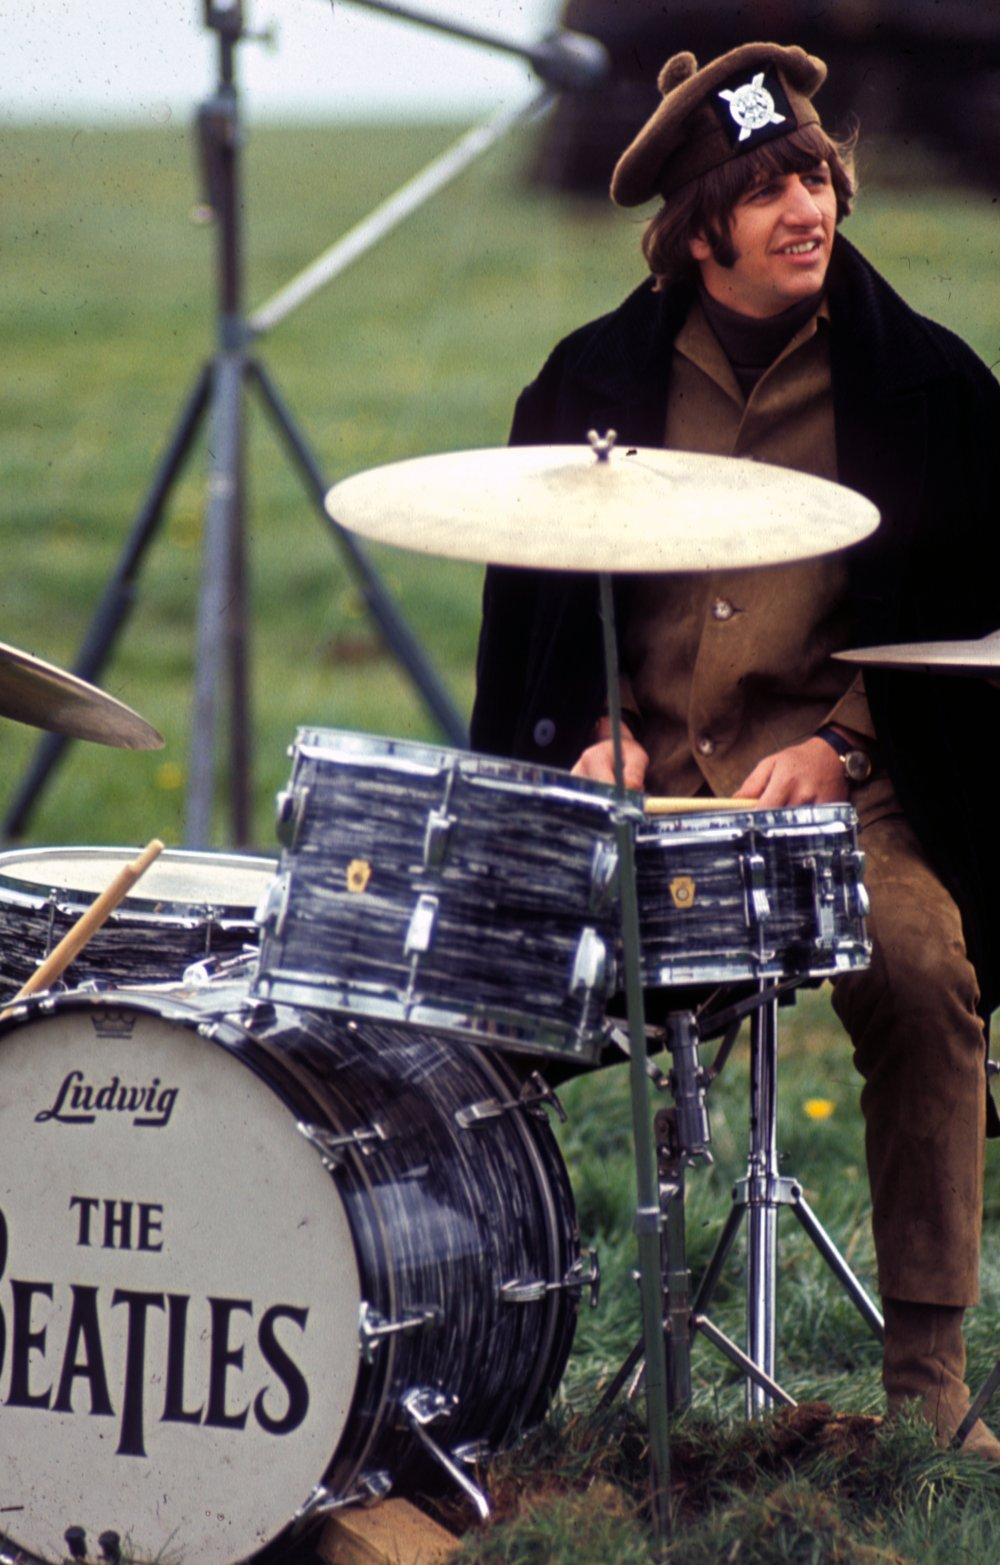 Ringo during the filming of the Salisbury Plain sequence. By this point in filming, the band's new single 'Ticket to Ride' was number one in the UK charts, offering the public their first taste of the upcoming Help! soundtrack and album